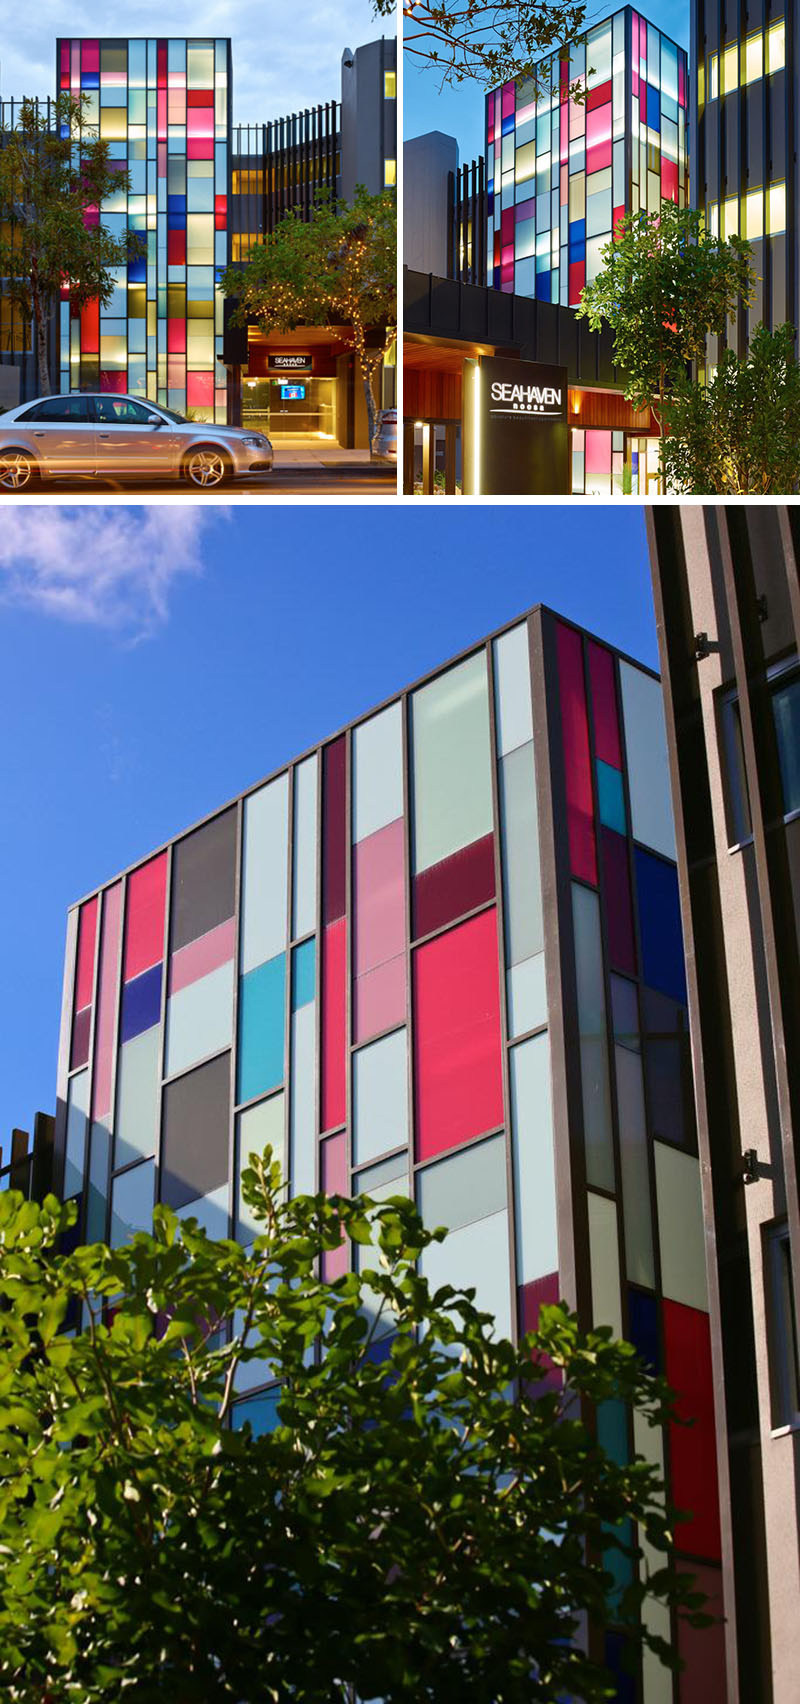 modern-glass-windows-colors-architecture-310517-332-02